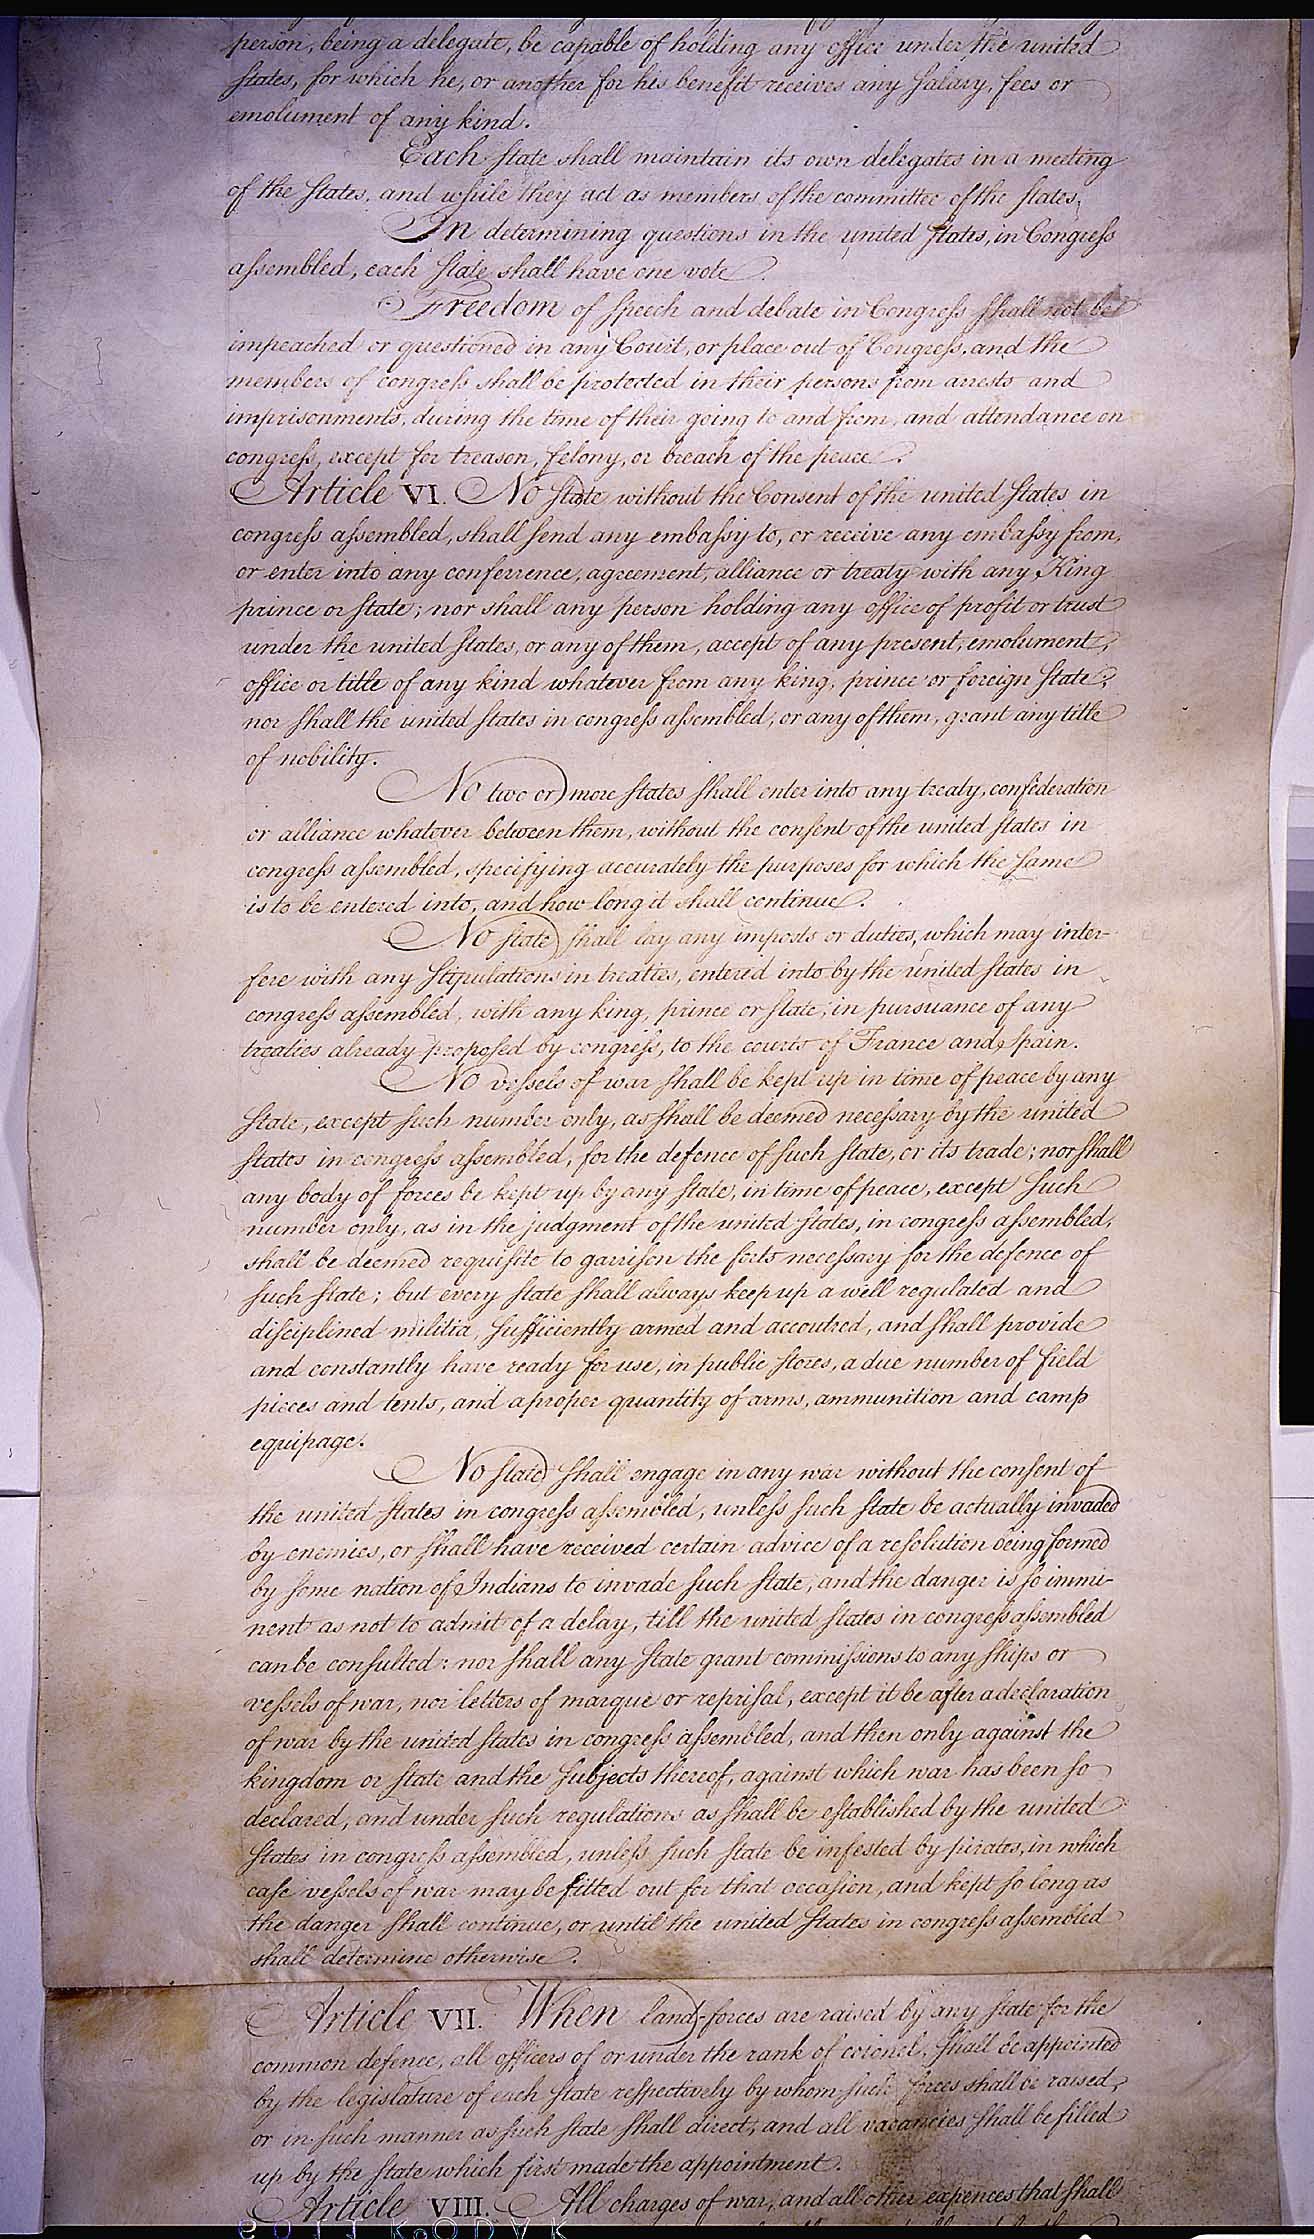 articles of confederation provided the united states with an effective government essay The articles of confederation did not provide the united states with an effective government it lacked many powers that we now have for example the government in the 1780's couldn't impose taxes.